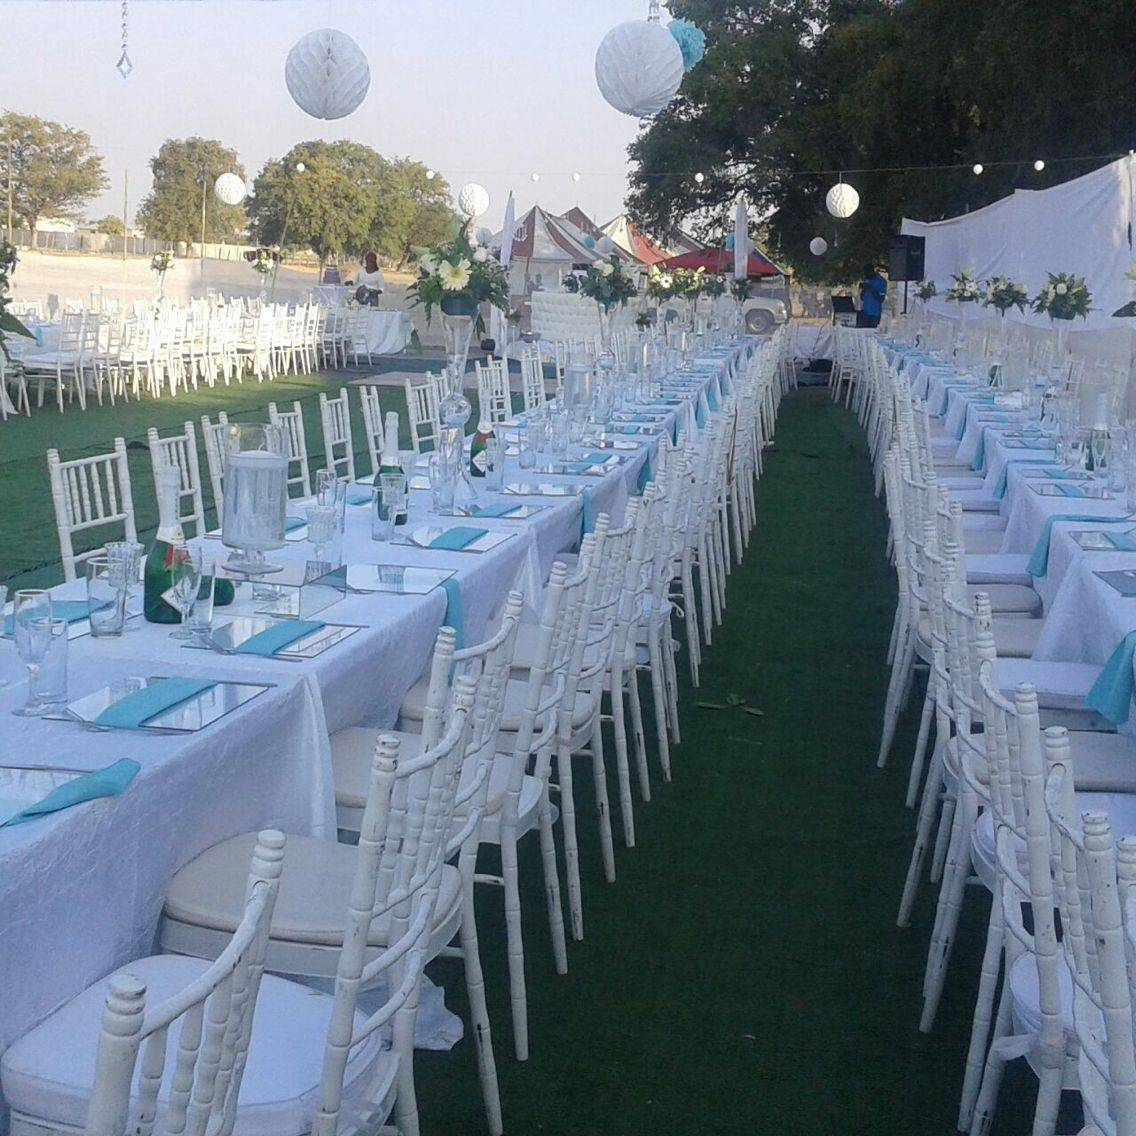 The popular Style Wedding Party Chairs are…?